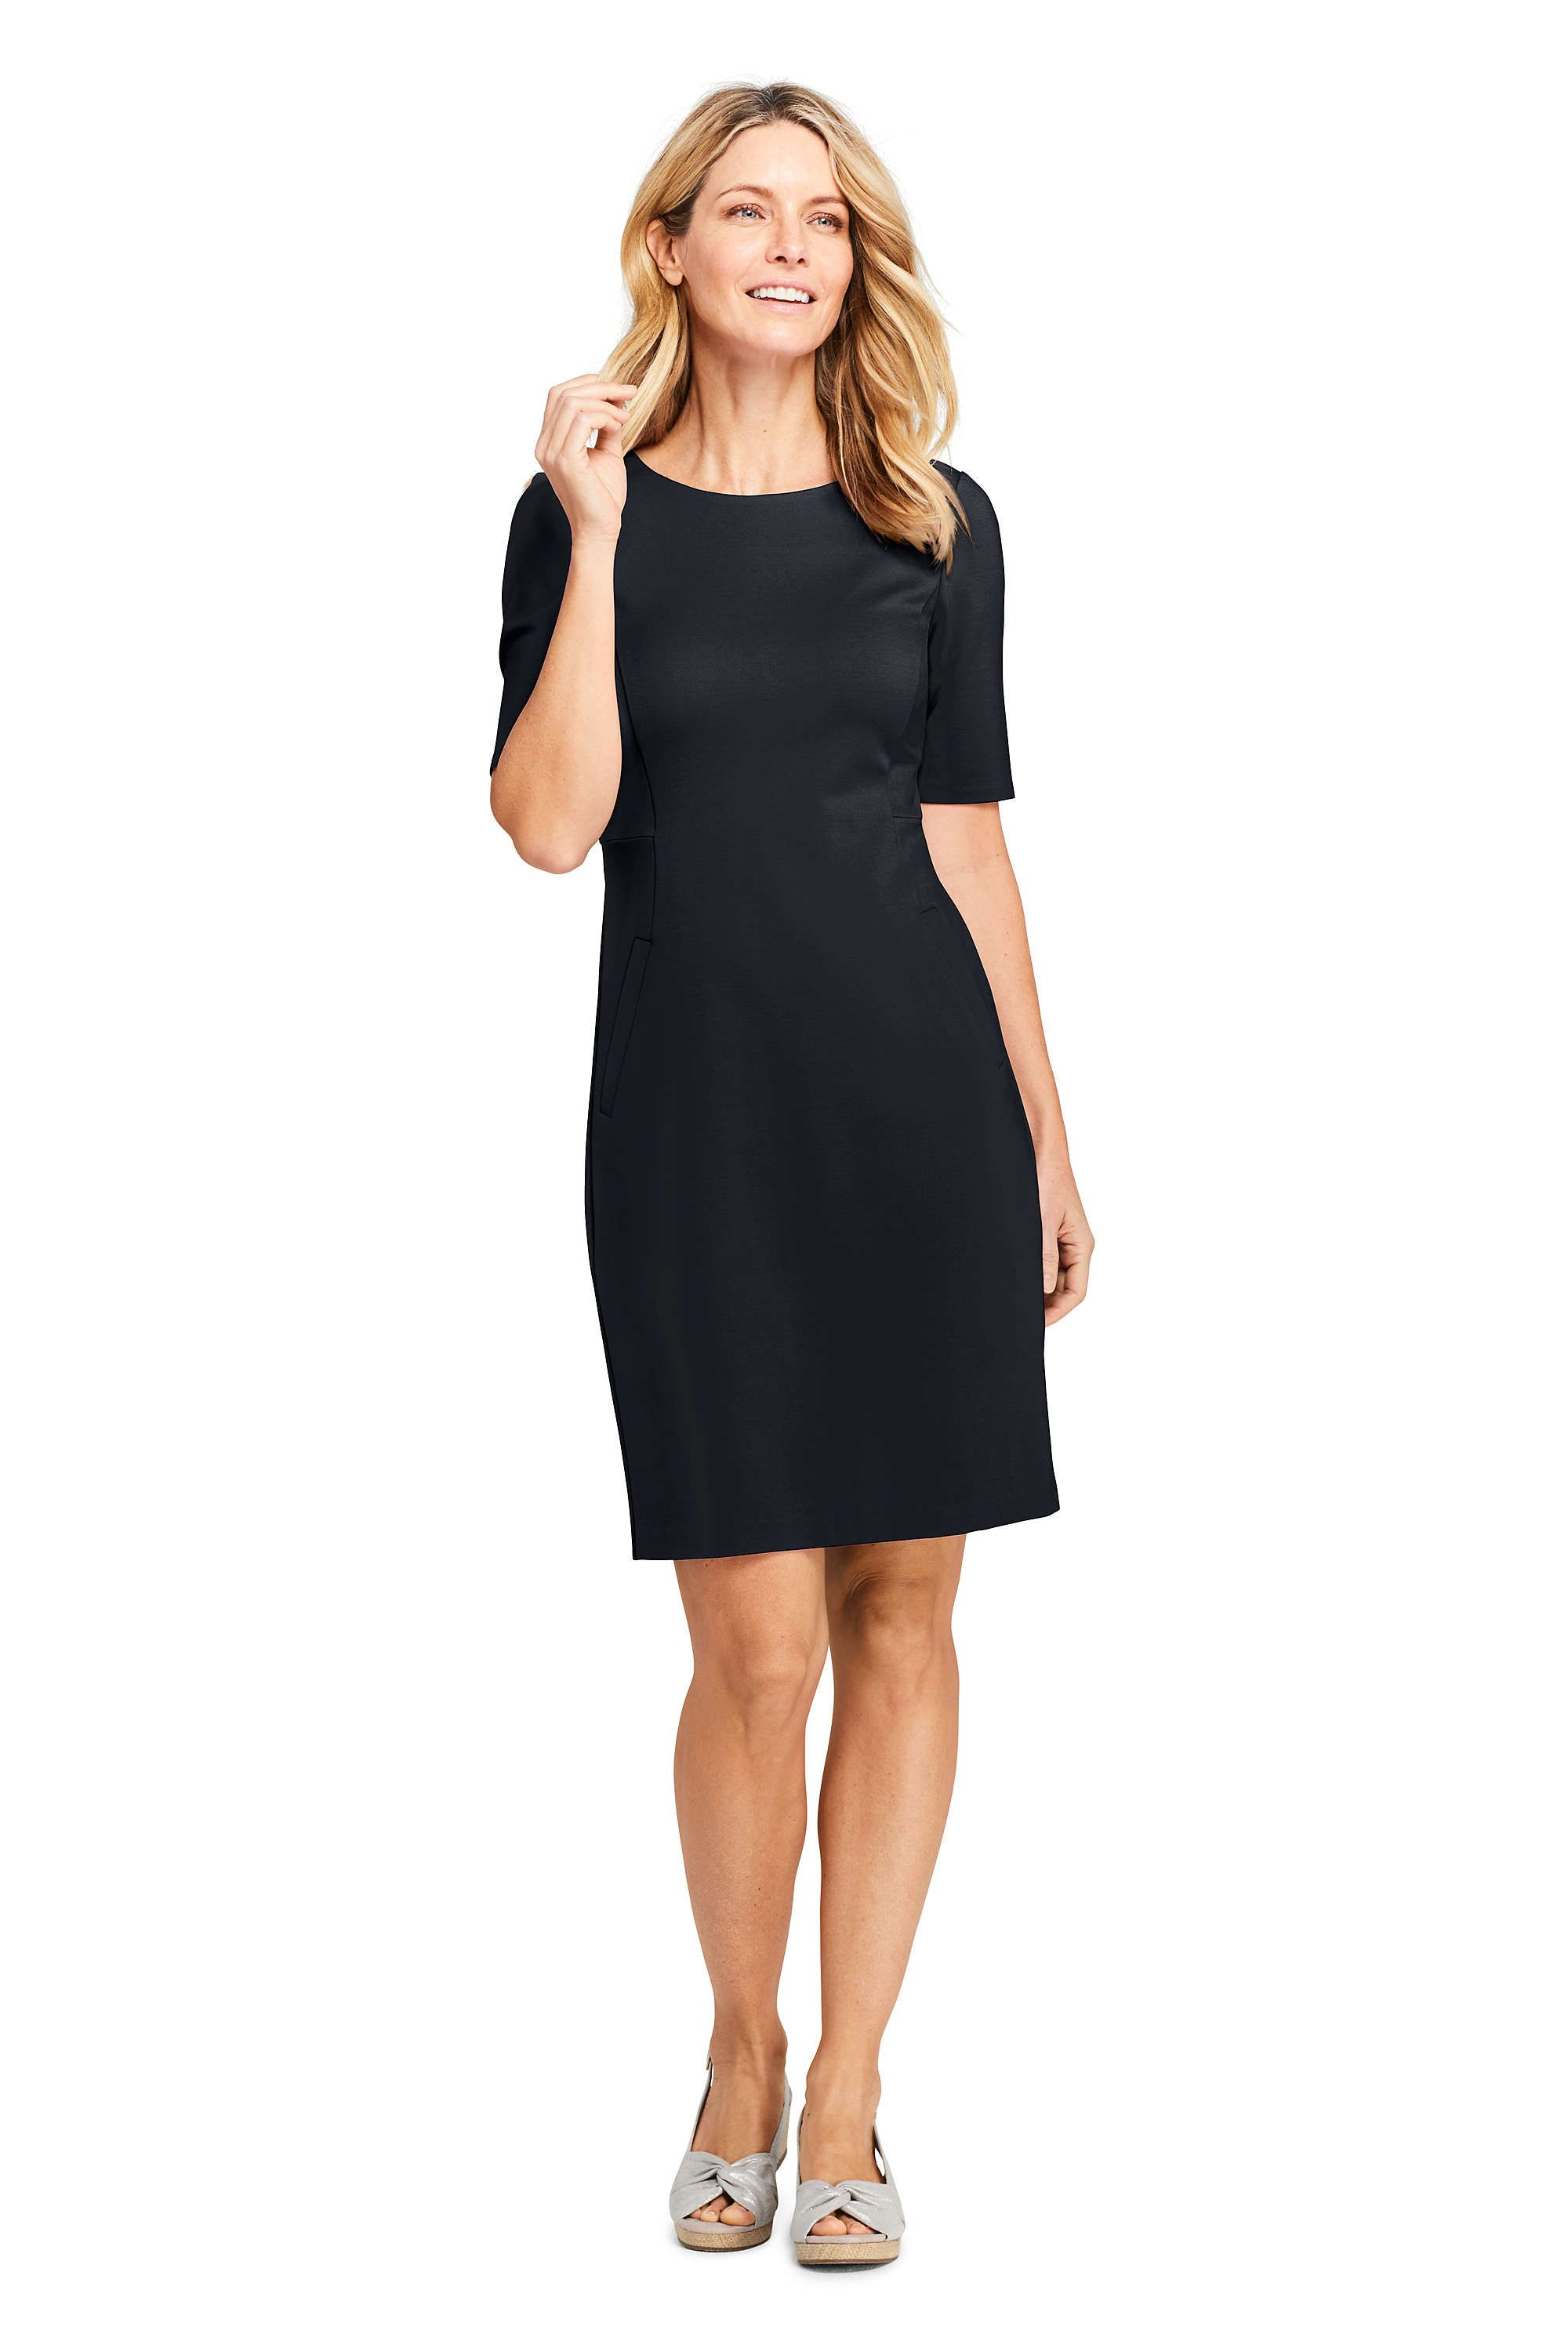 ff3ca6a1 Women's Ponte Knit Sheath Dress with Elbow Sleeves from Lands' End ...